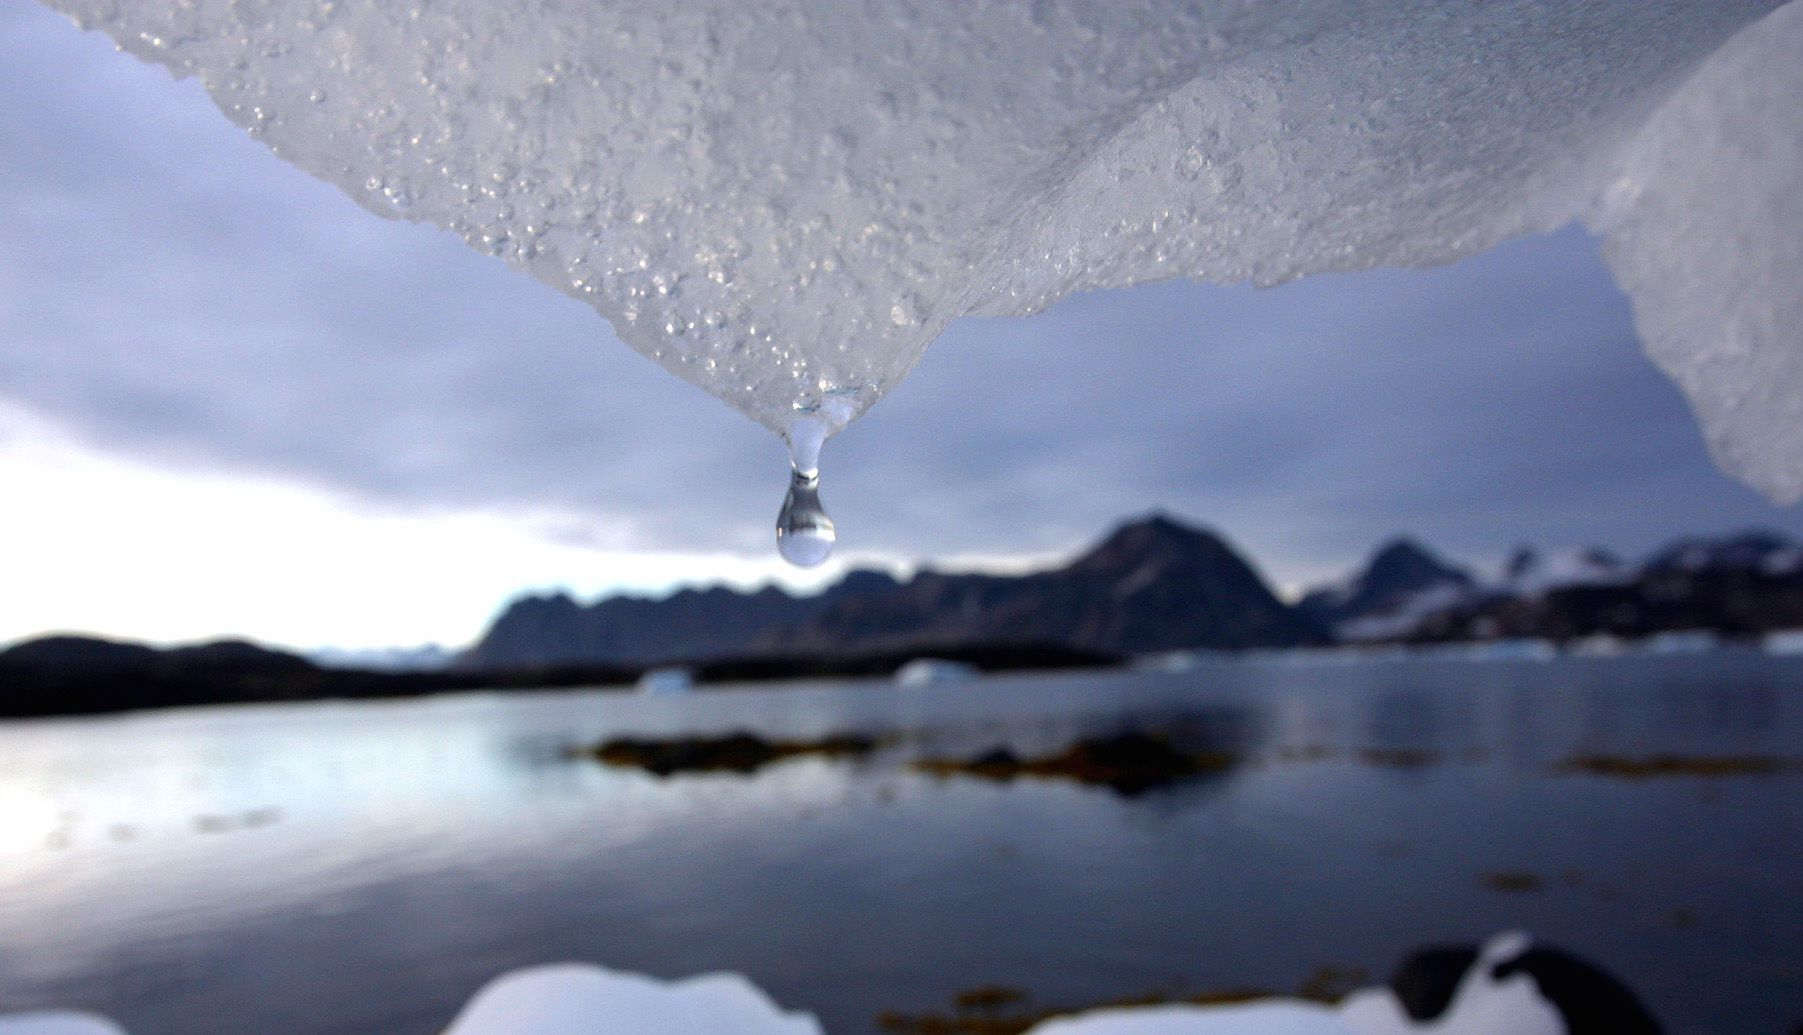 An iceberg melts in Kulusuk, Greenland near the arctic circle Tuesday Aug, 16, 2005. Scientists say that global warming has an increasing effect on the Arctic region with glaciers shrinking, temperatures of the arctic waters warming, and permafrost softening. (AP Photo/John McConnico